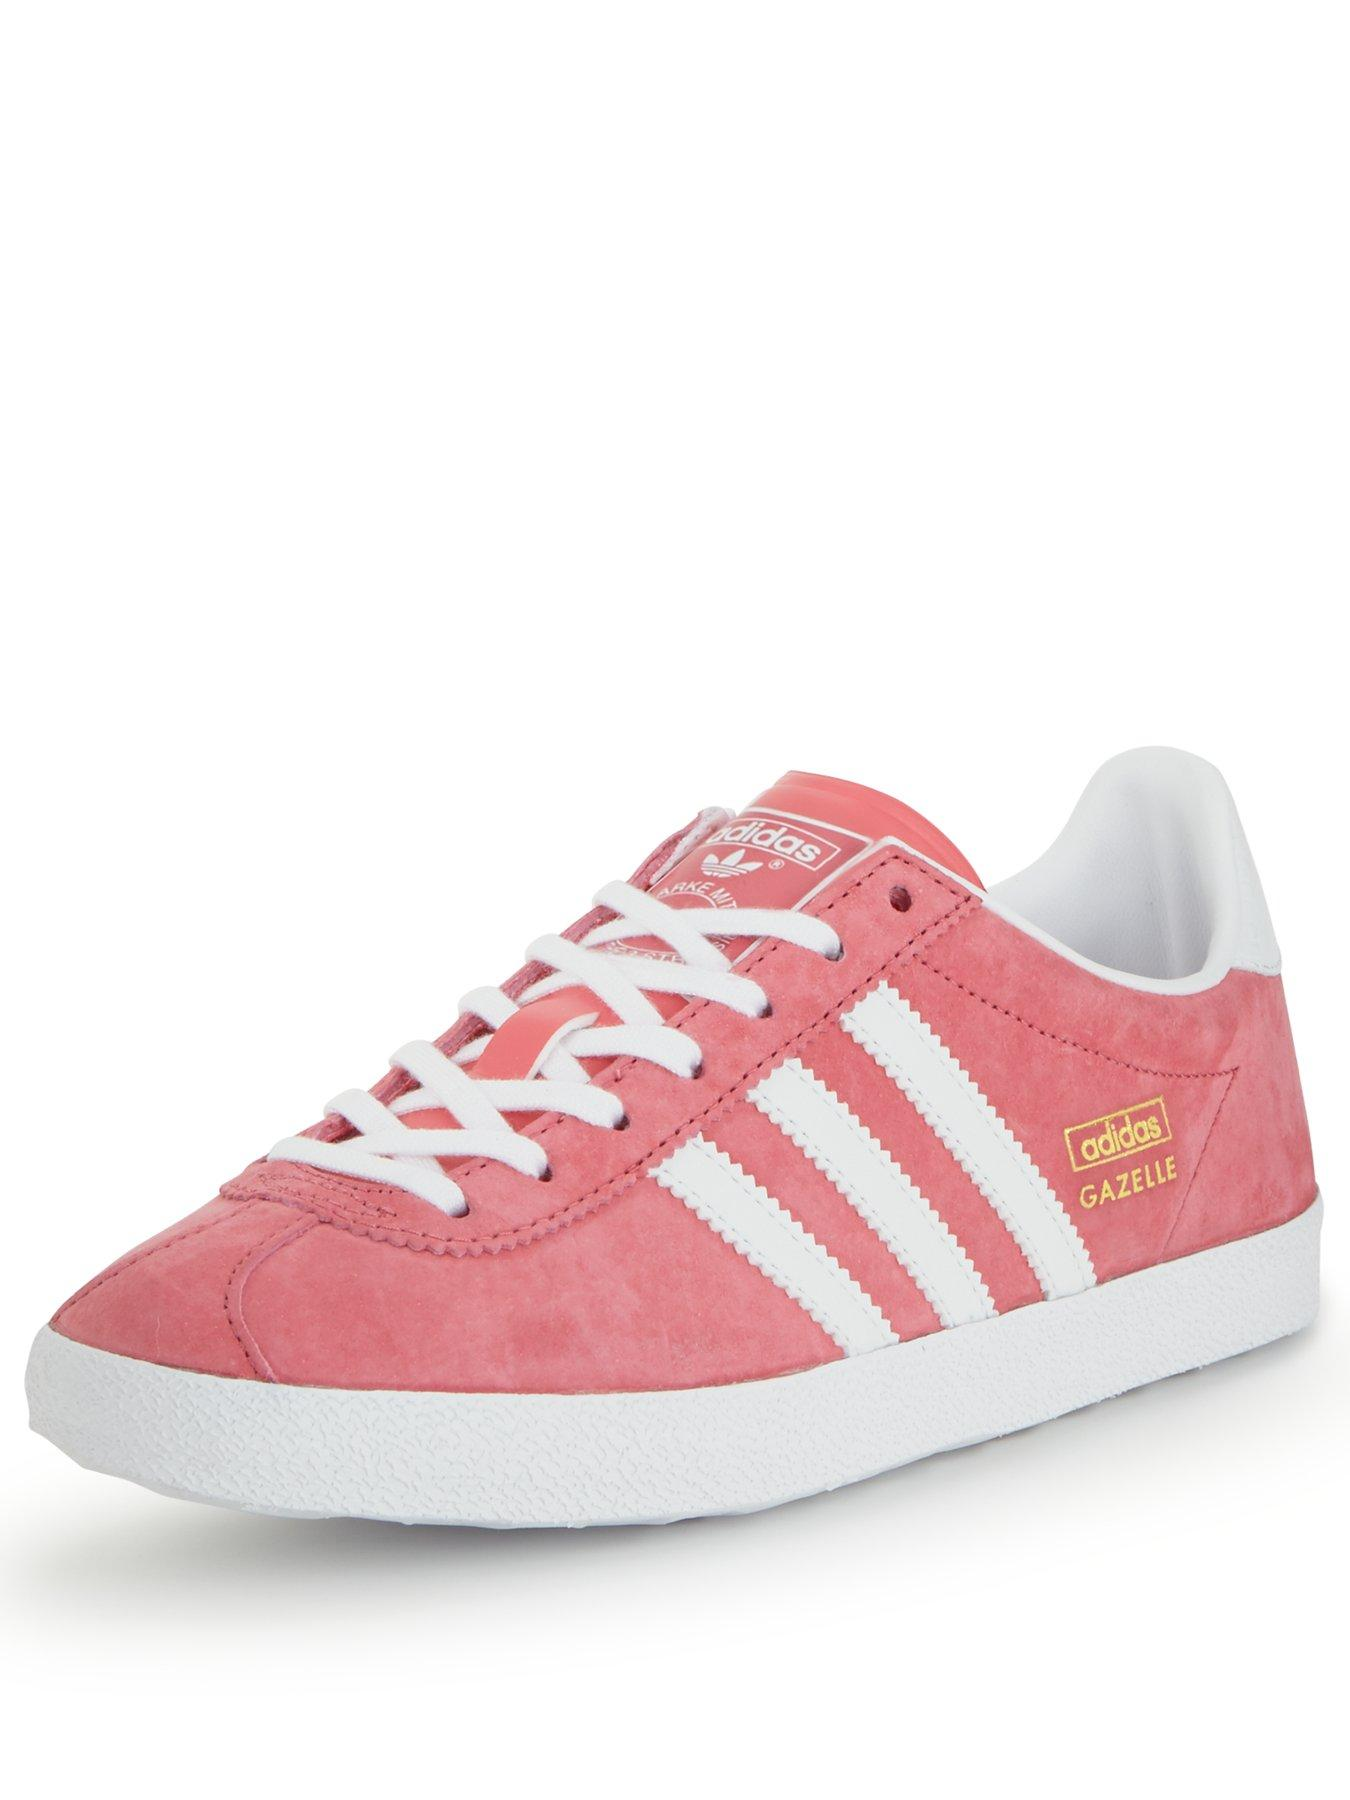 mens pink adidas trainers